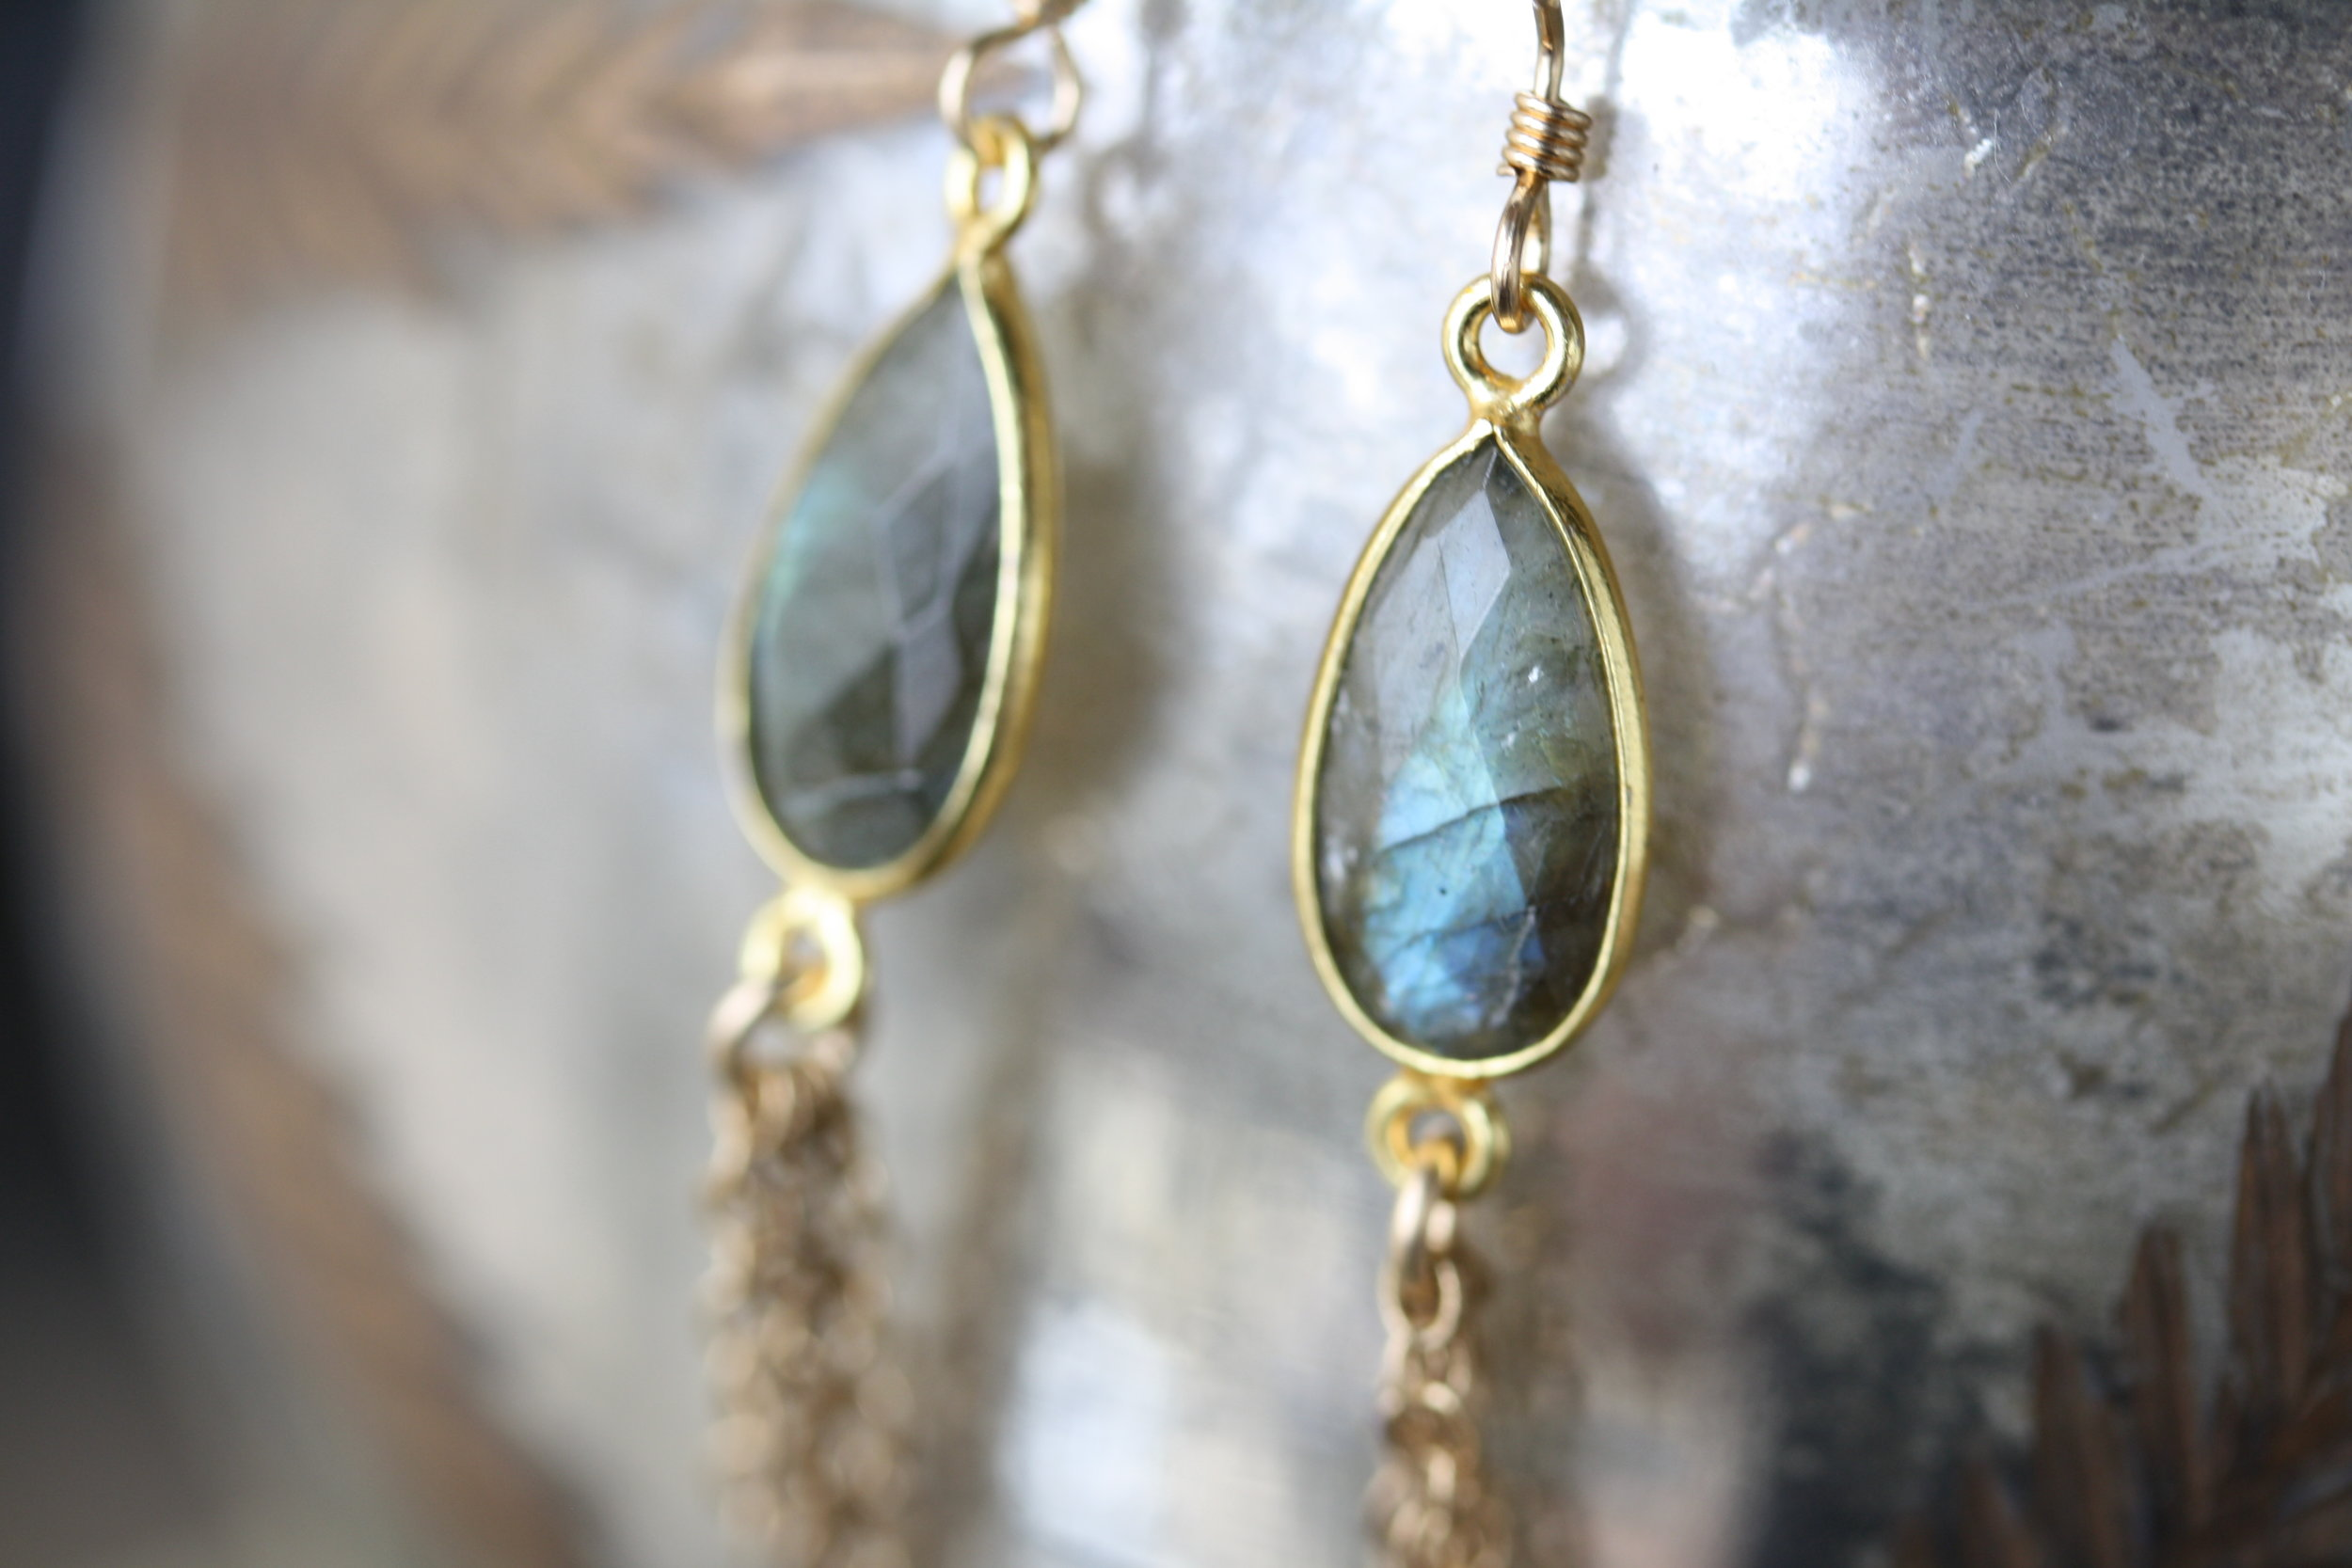 Dancing Nancy Teardrop Labradorite Earrings_04 copy.JPG